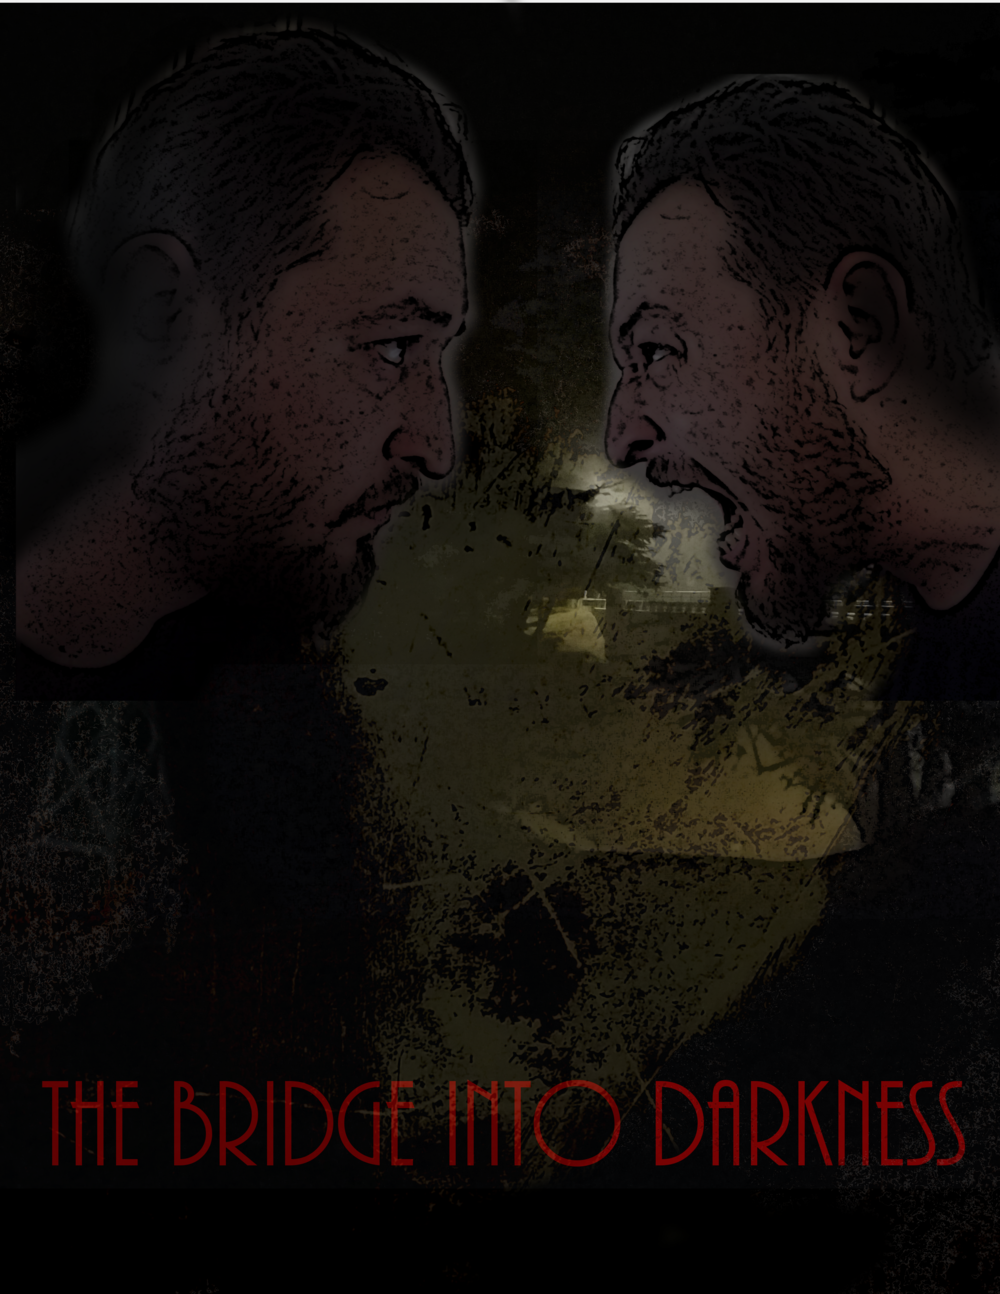 Bridge into darkness - Drawn in..